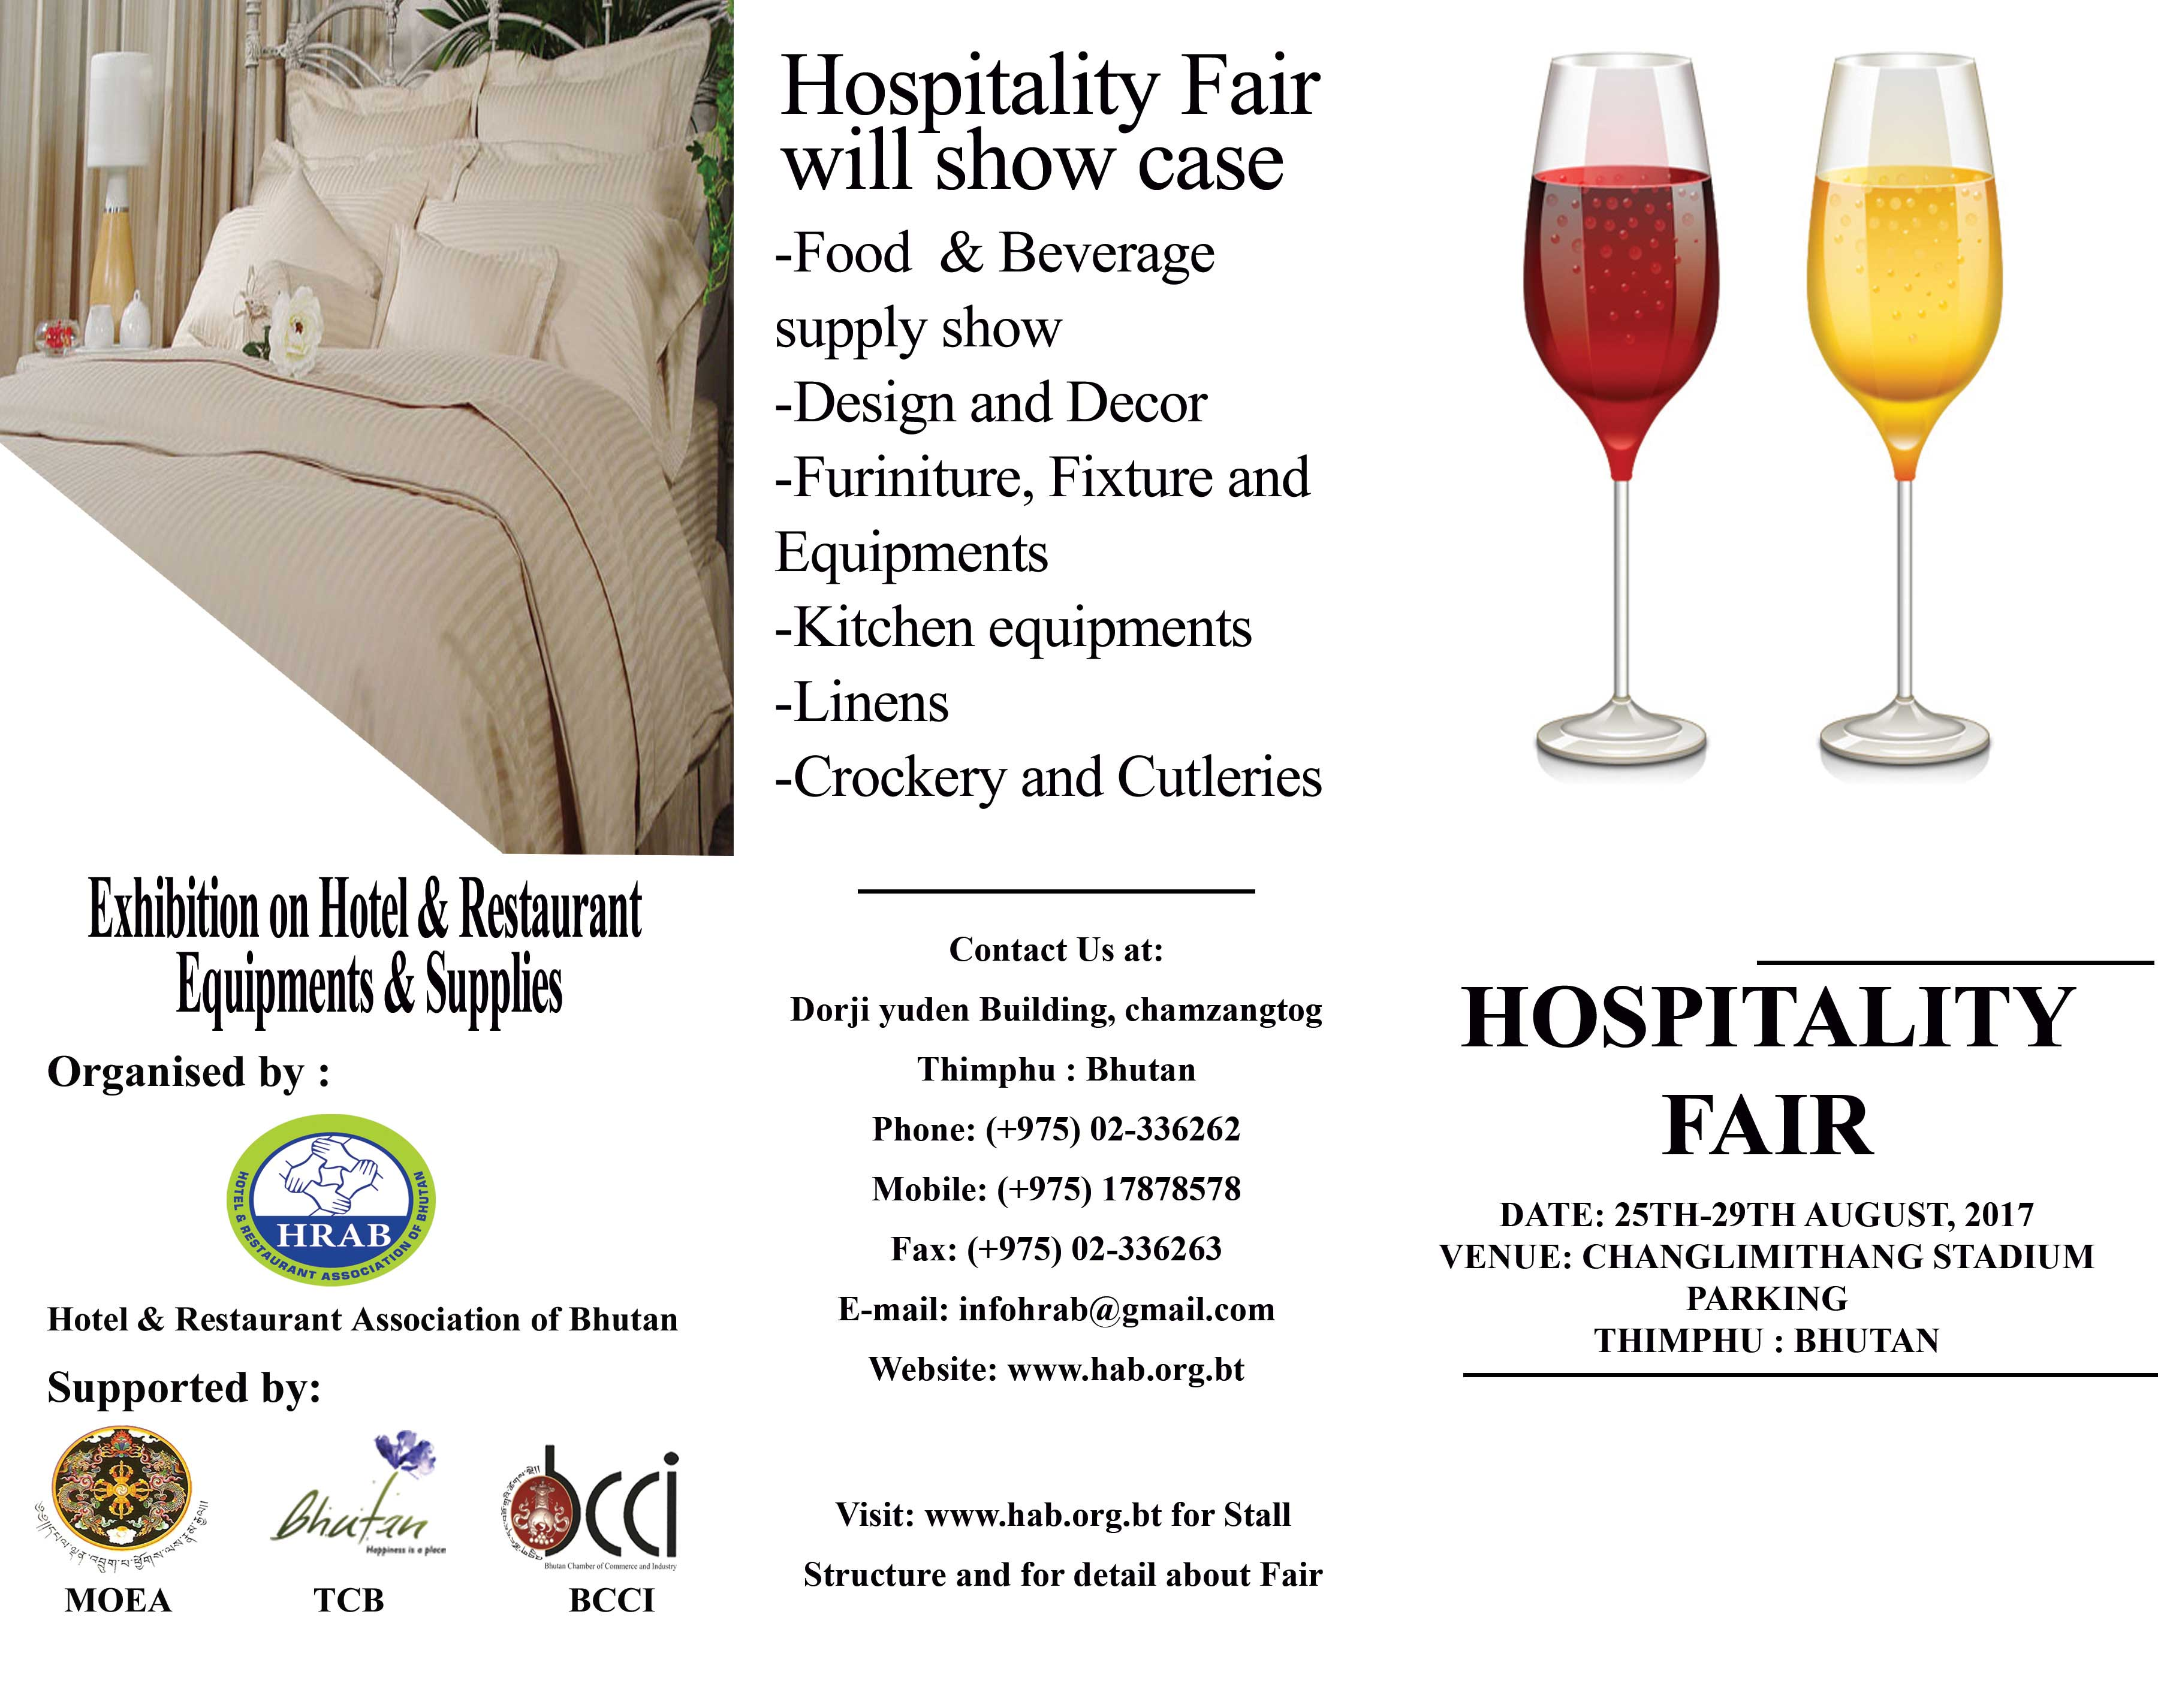 InterMarket is Participating a Hospitality Fair in Bhutan